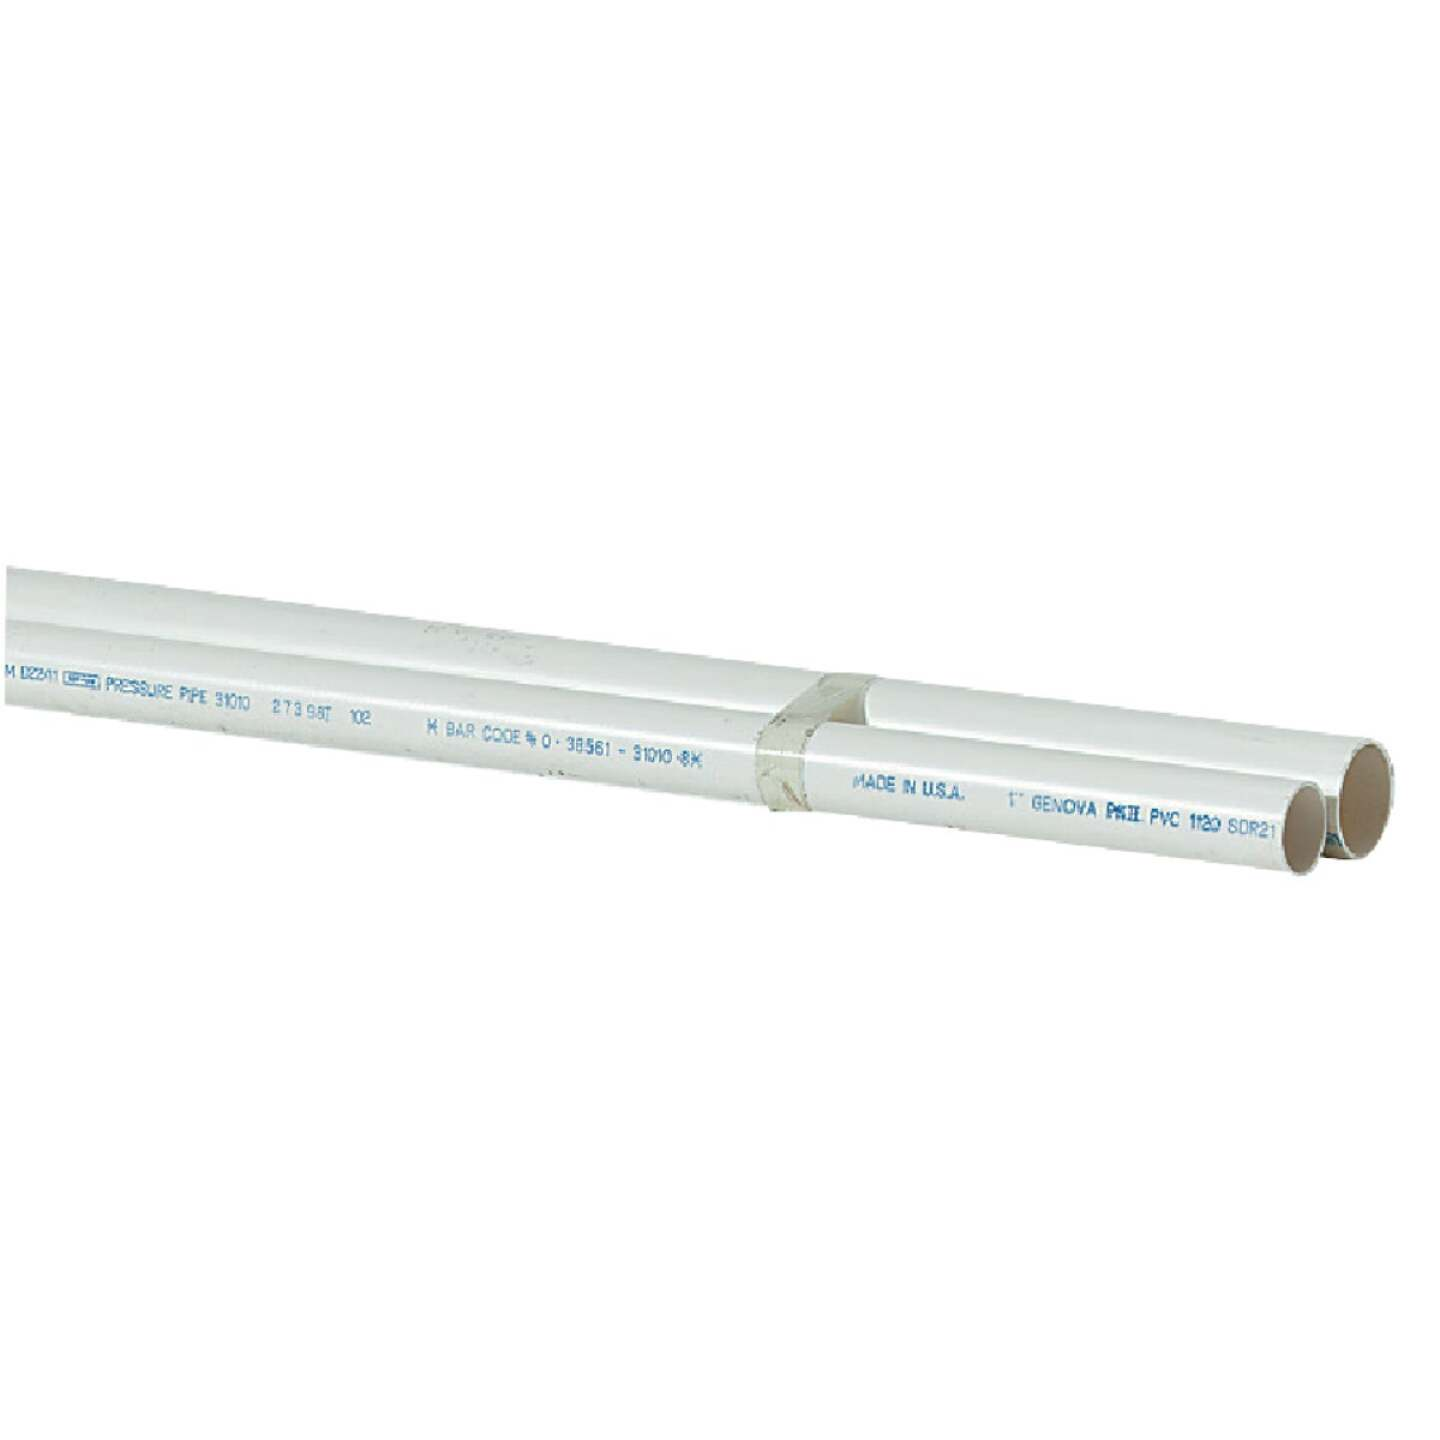 Charlotte Pipe 1-1/4 In. x 10 Ft. Cold Water PVC Pressure Pipe, SDR 26 Image 1